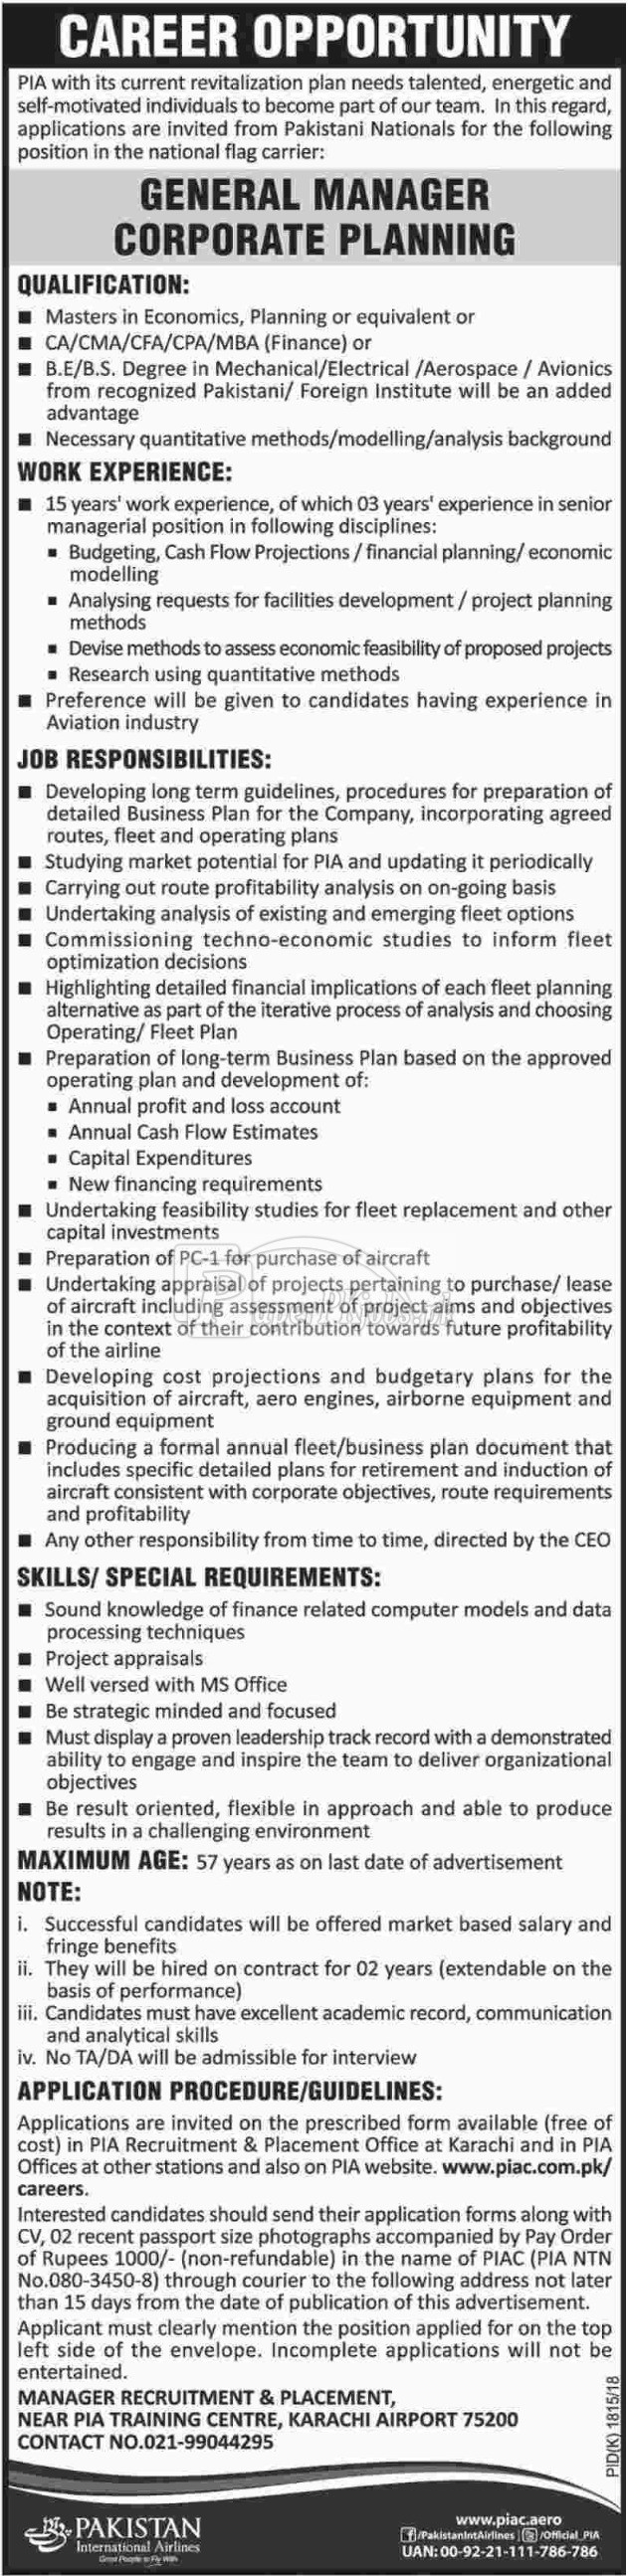 Pakistan International Airlines PIA Jobs 2017